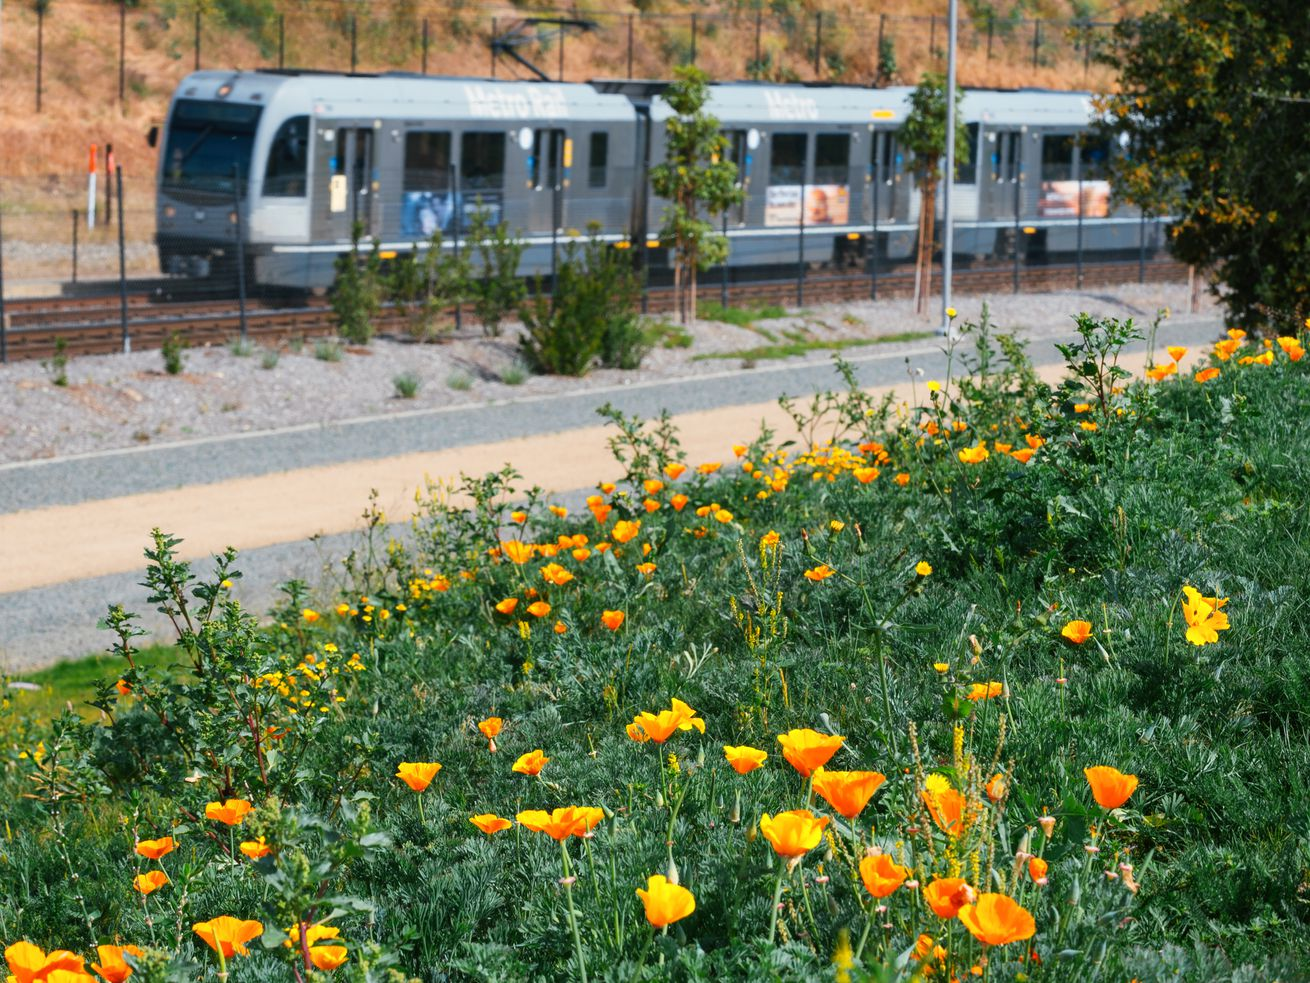 One part of Metro's plan is better local bus service between parks and rail lines.